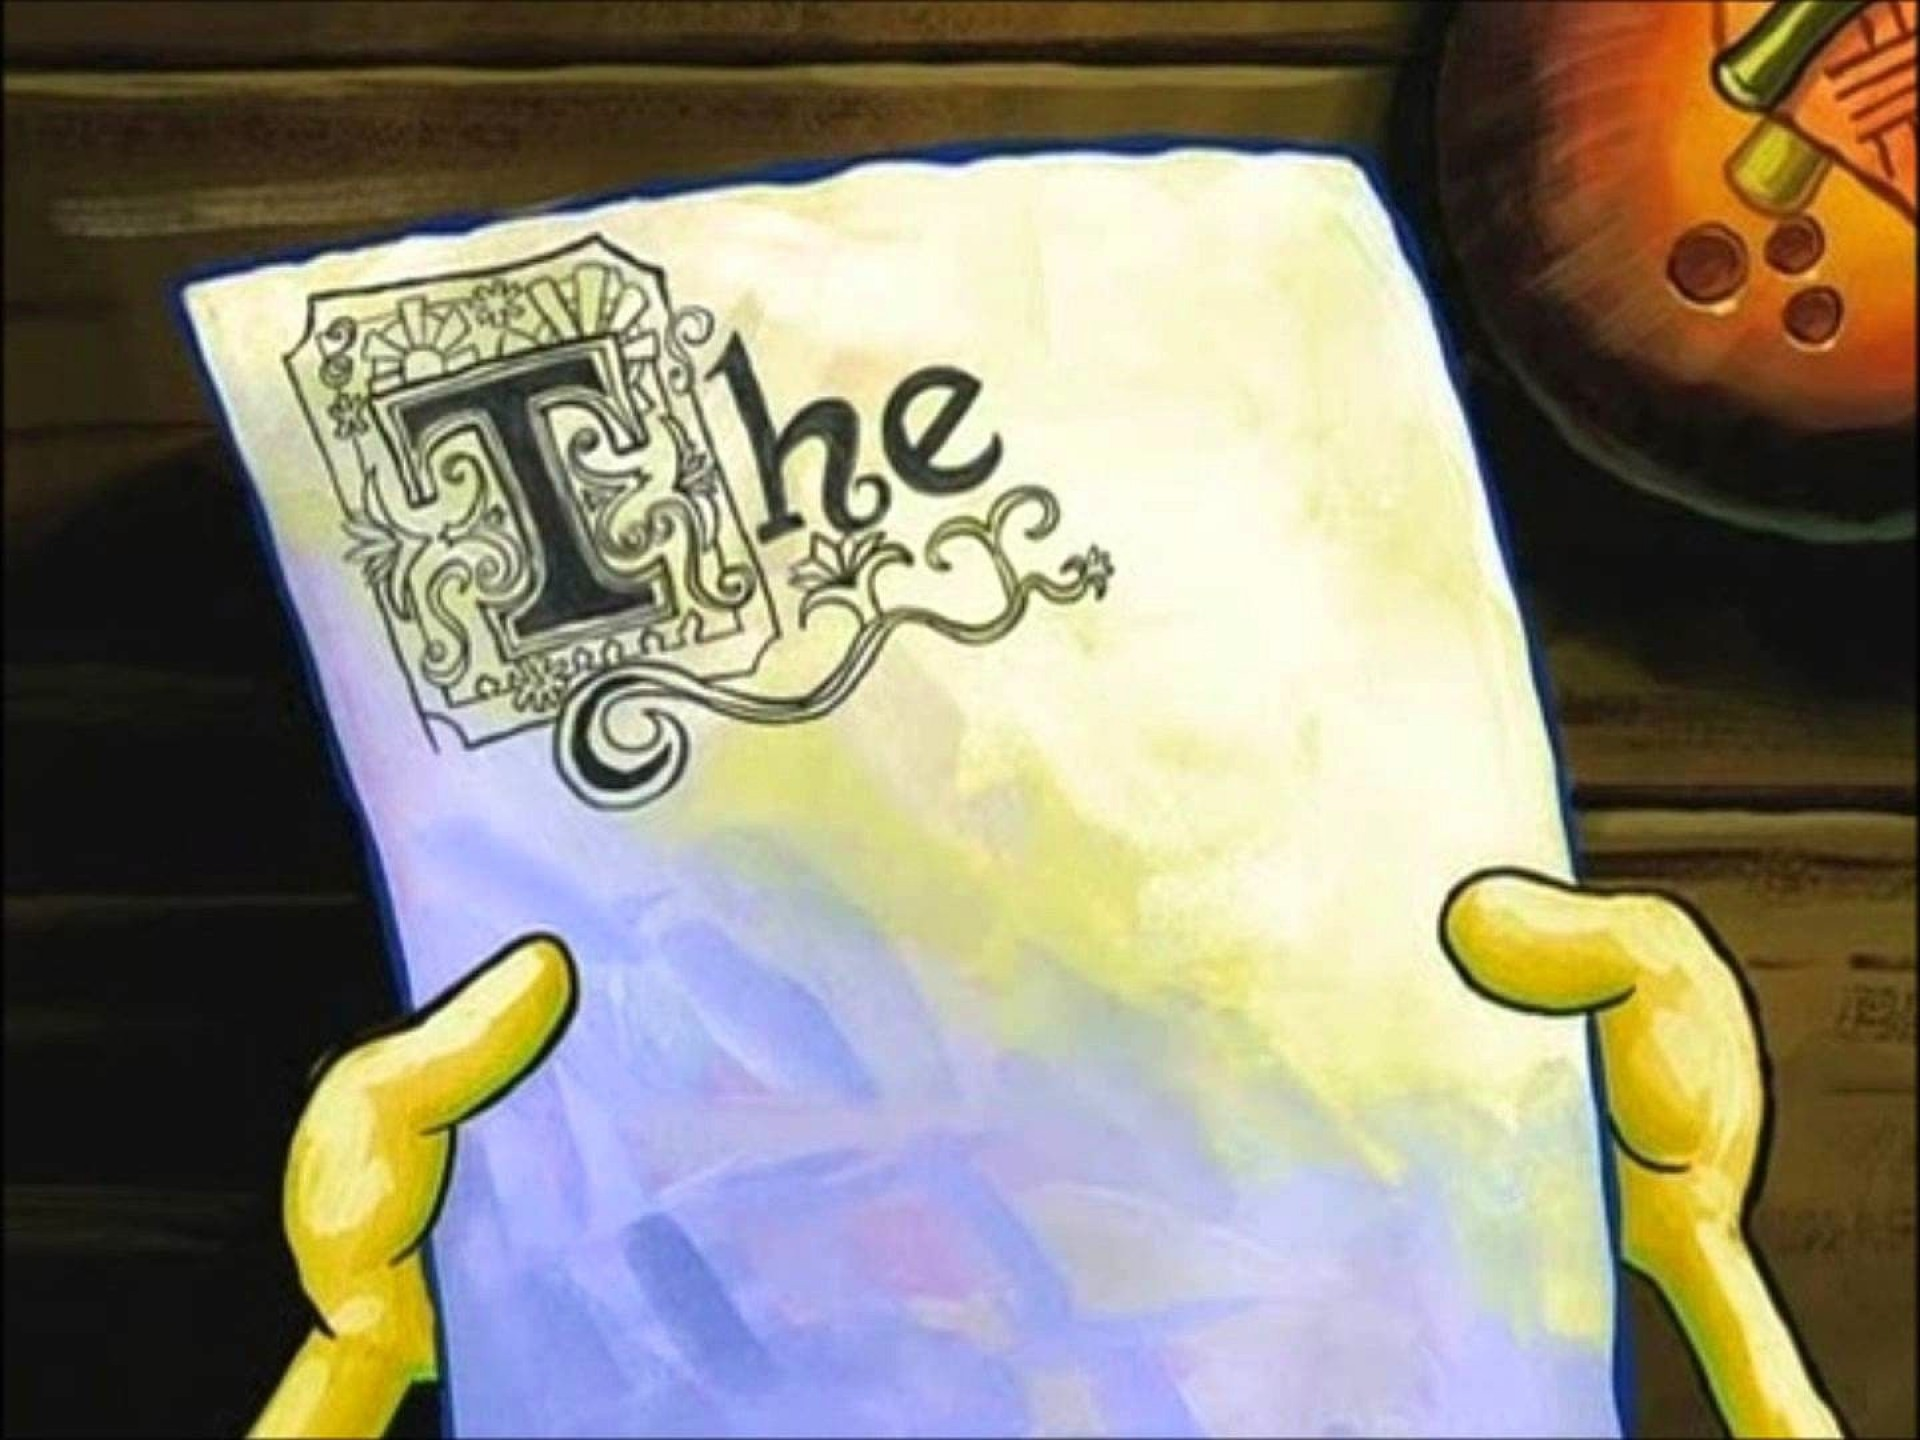 008 Essay Example Surprising Spongebob Writes An Full Episode Meme Generator Deleted Scene 1920